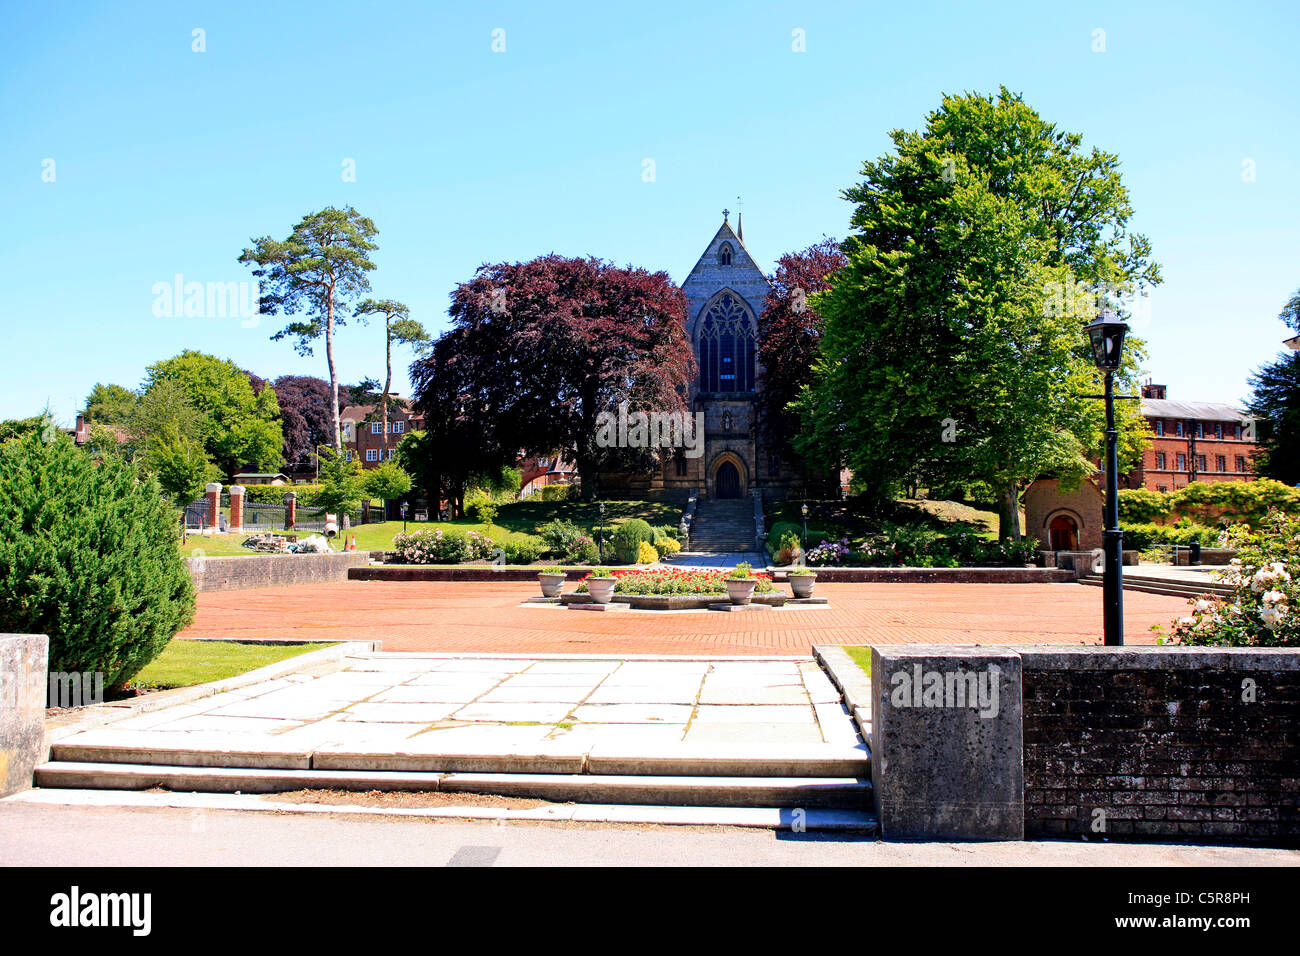 The old Chapel at Marlborough College Wiltshire - Stock Image